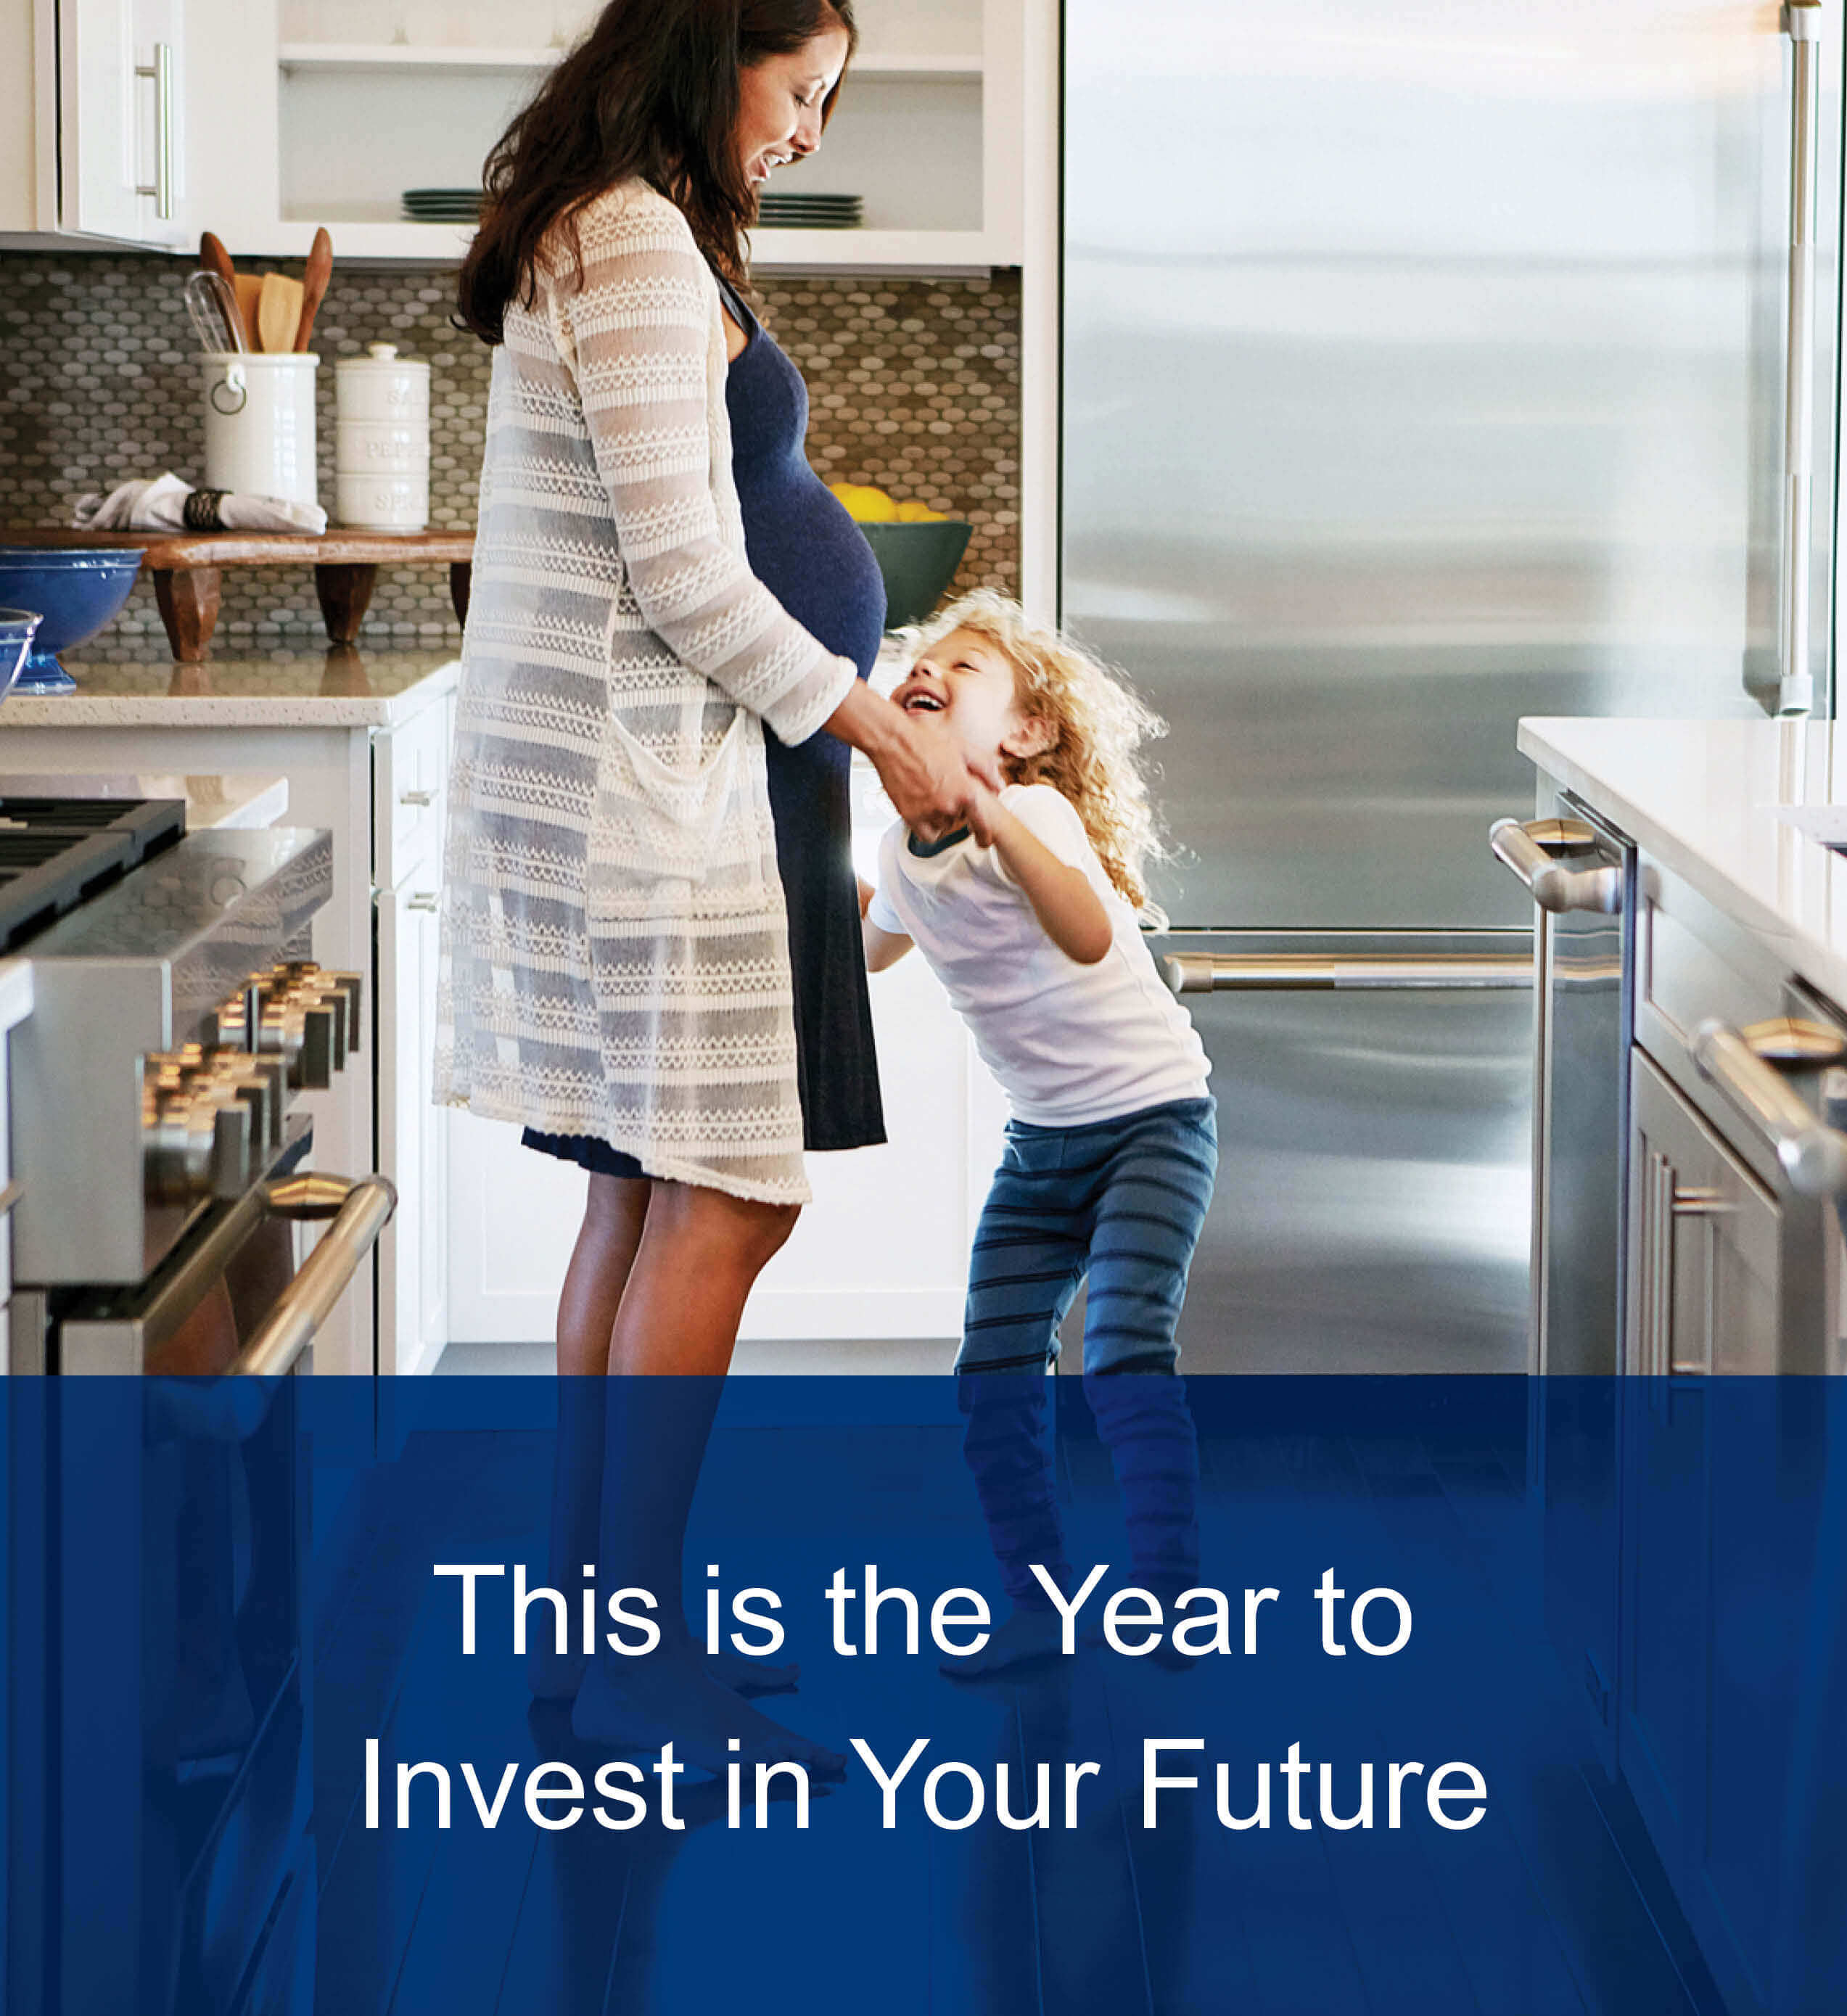 This is the Year to Invest in Your Future